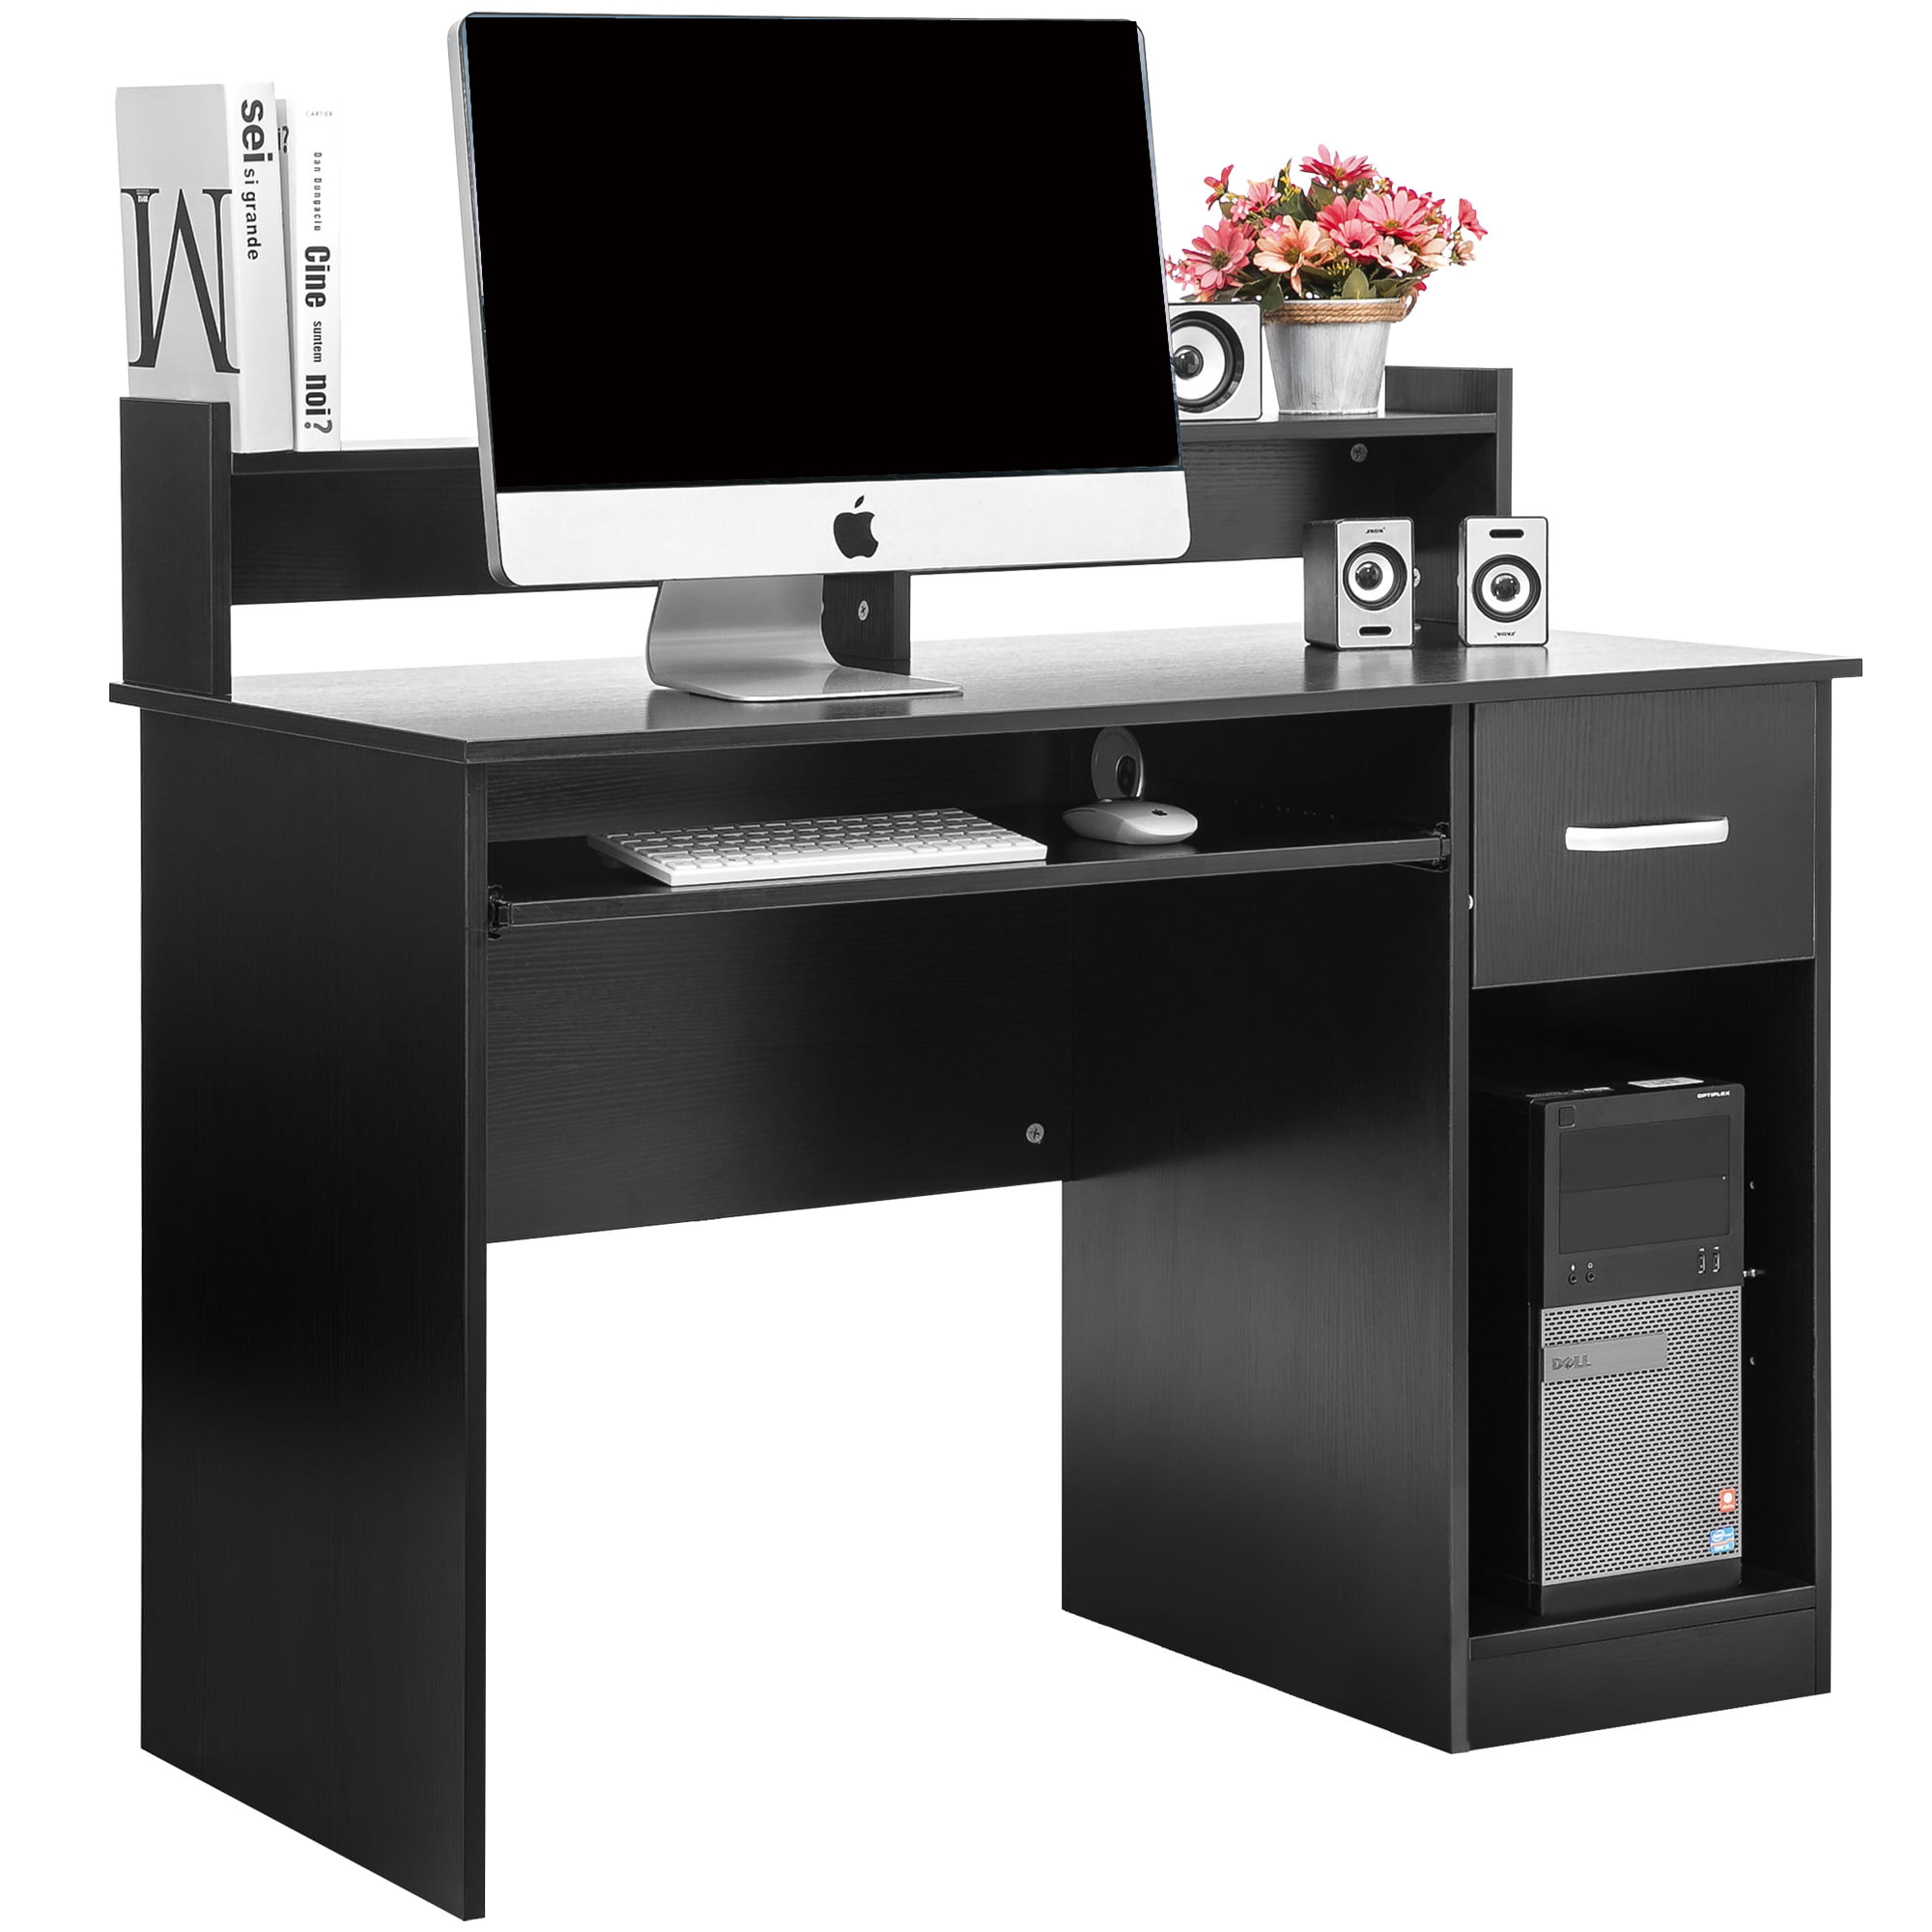 Ktaxon Wood Computer Desk Office Black Laptop PC Work Table Home